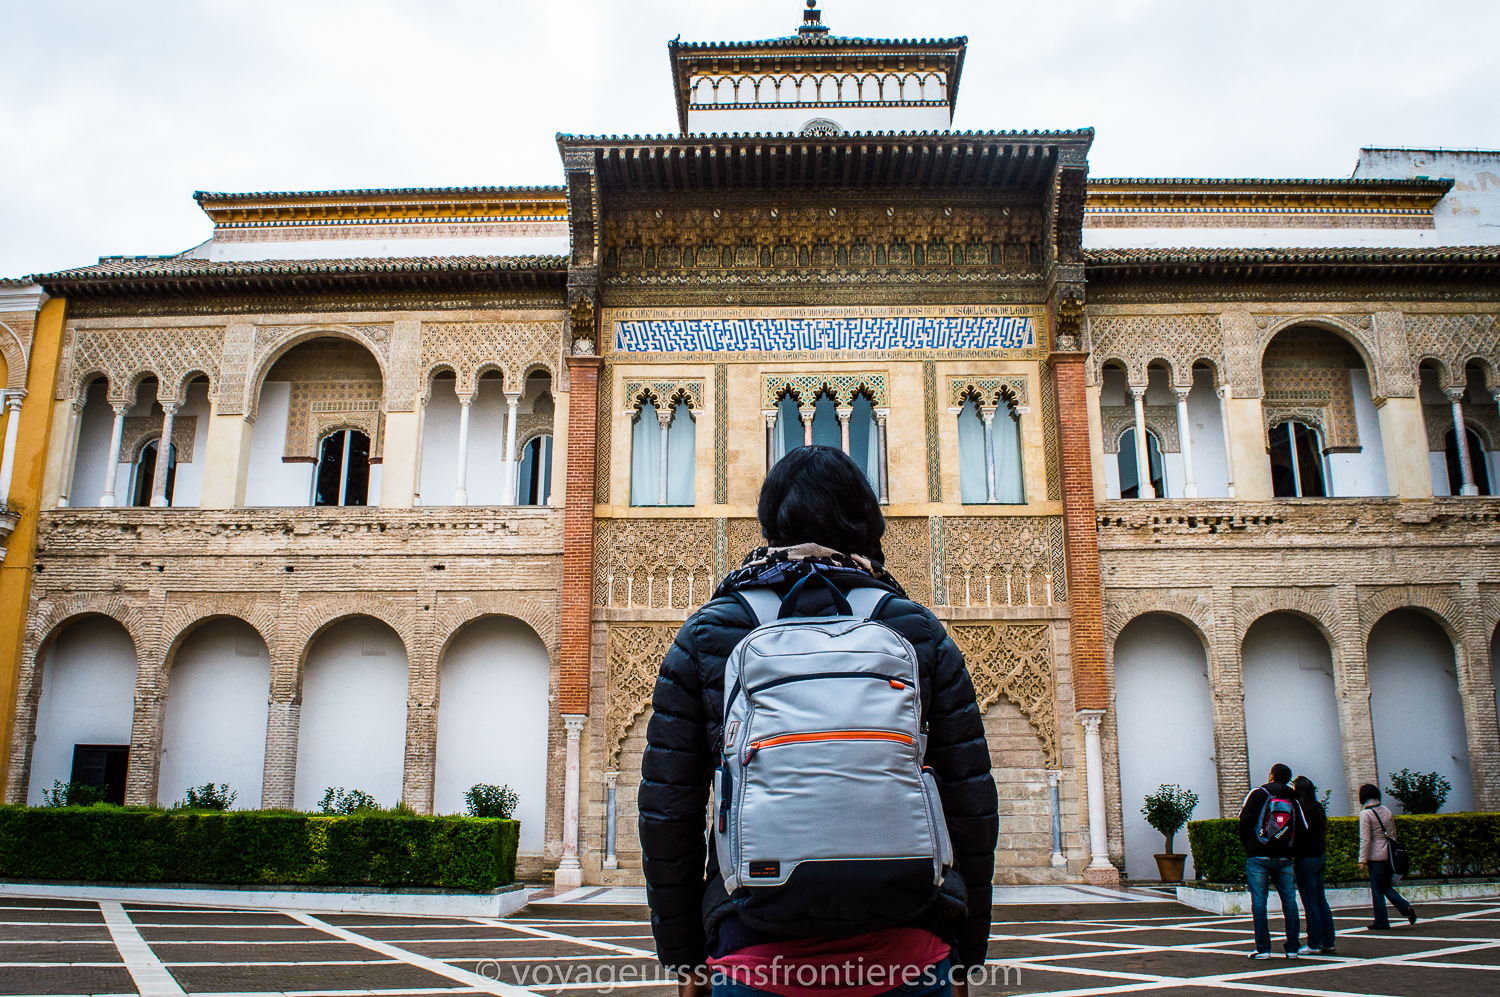 Nath with the Hedgren Junction at the Real Alcazar - Seville, Spain